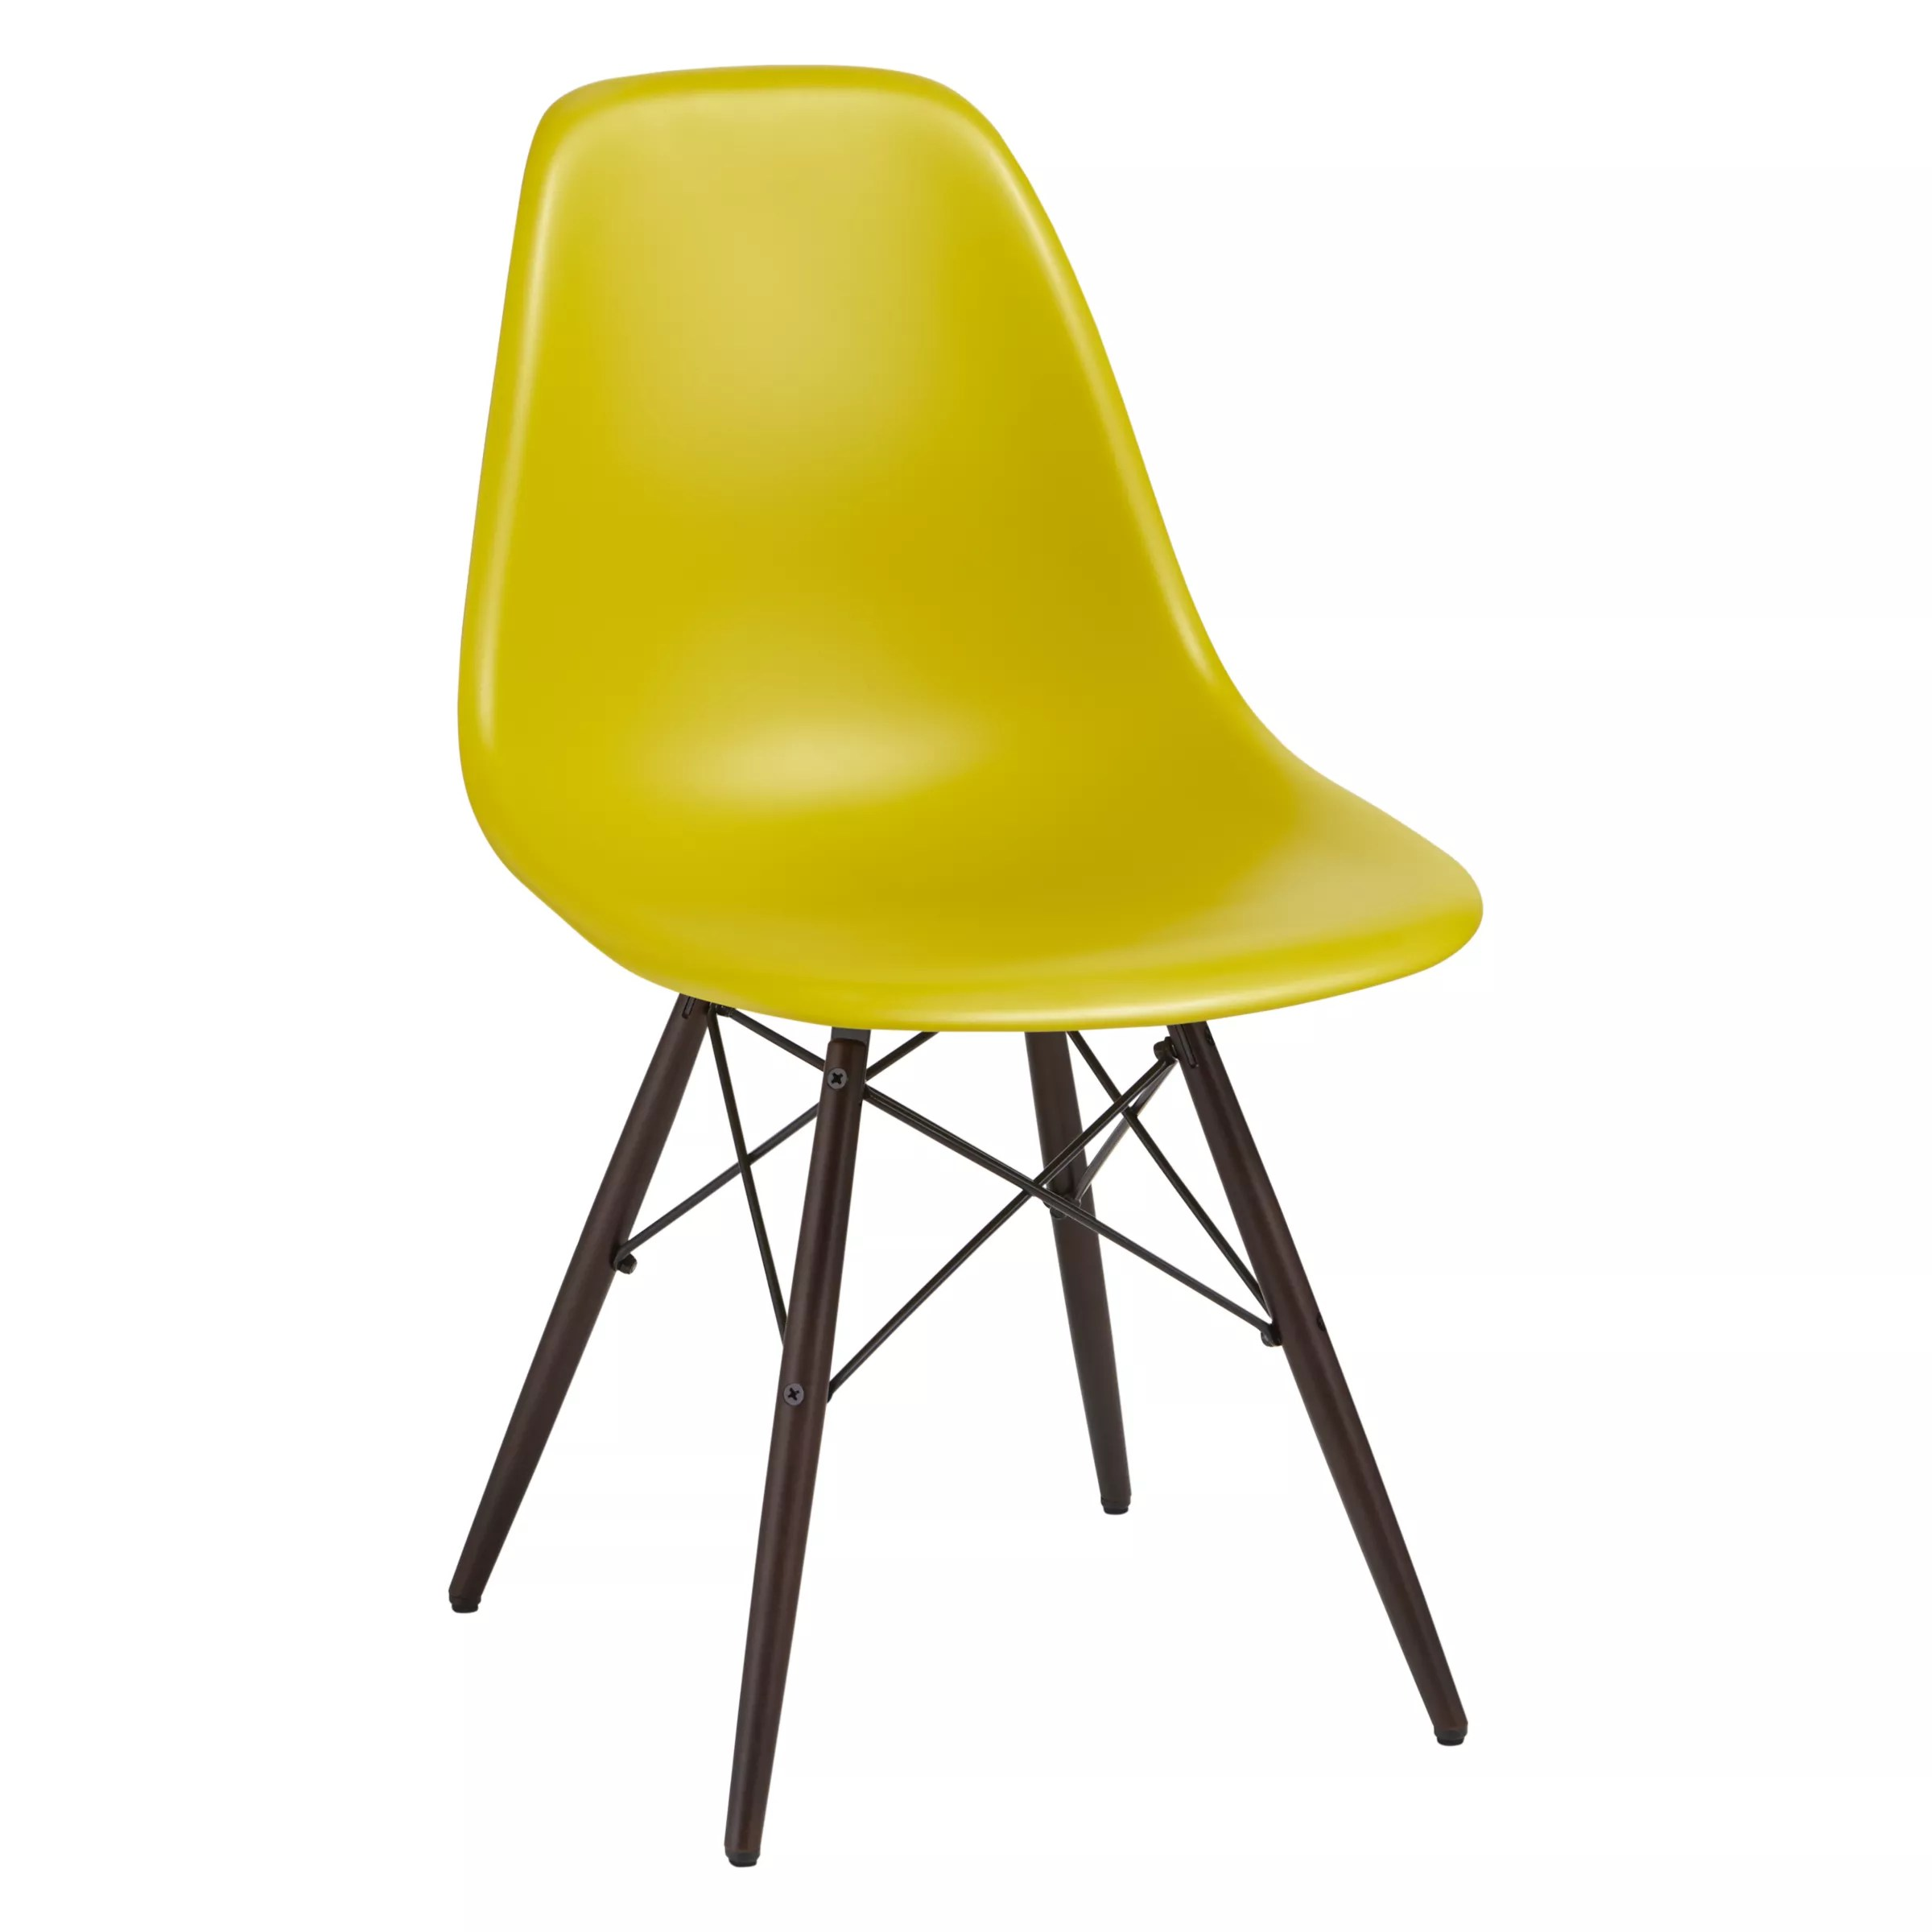 Vitra Eames Side Chair Vitra Eames Dsw Side Chair Dark Maple Leg At John Lewis Partners